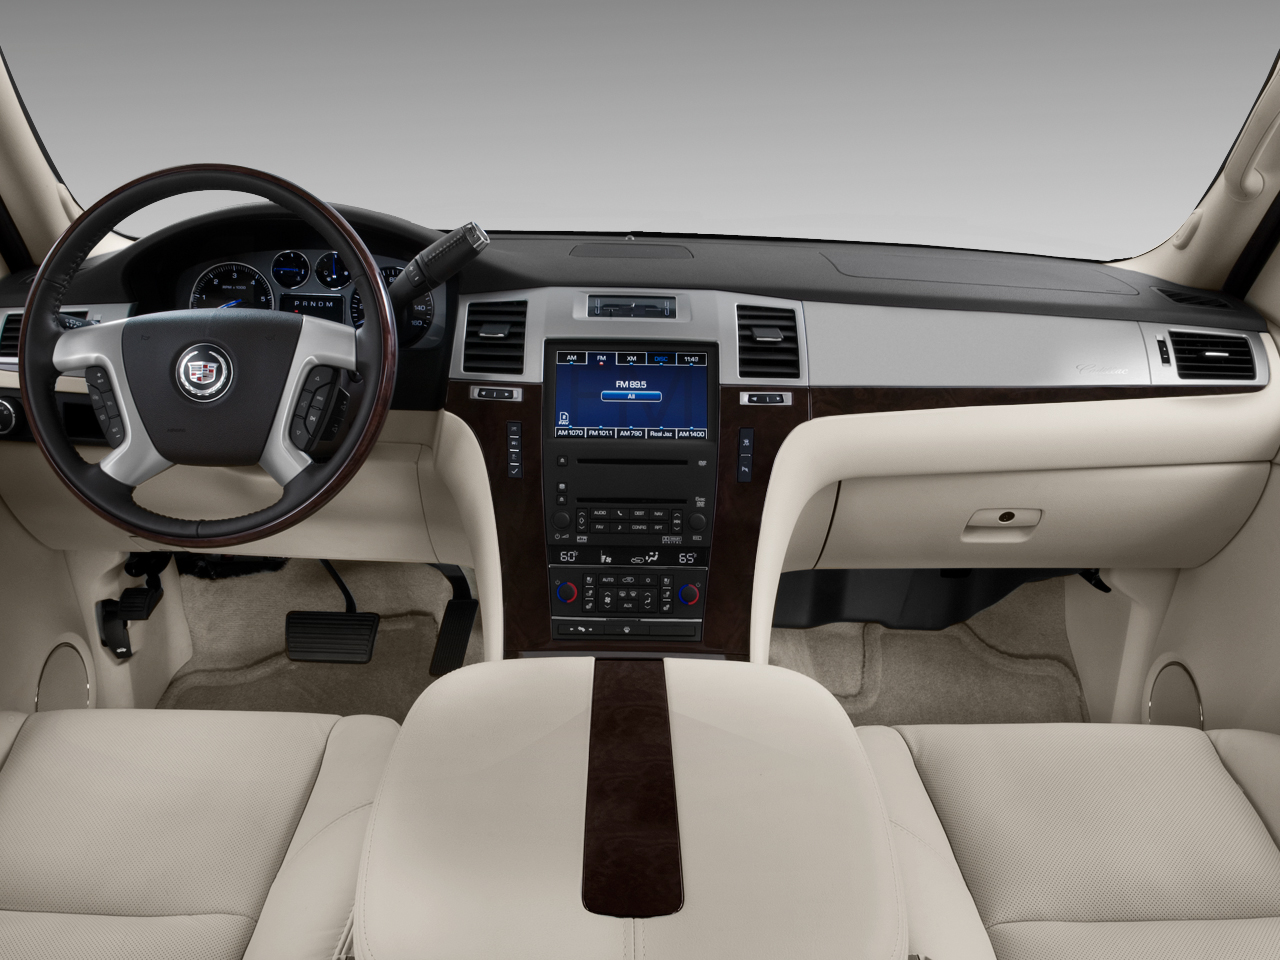 Cadillac Escalade Interior